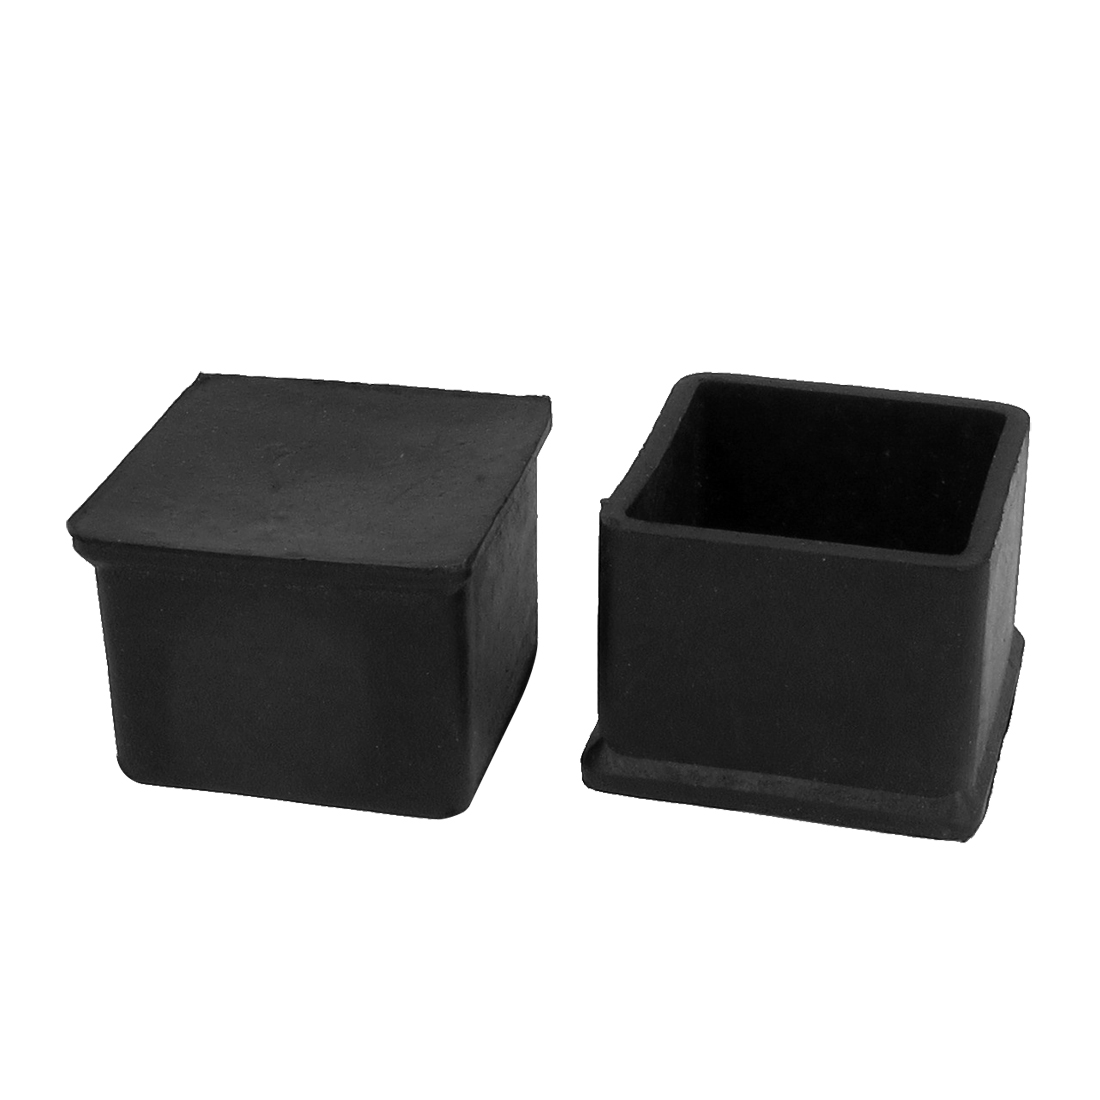 45mm x 45mm Square Rubber Furniture Leg Cap Foot Cover Holder Protective Tip 2pcs